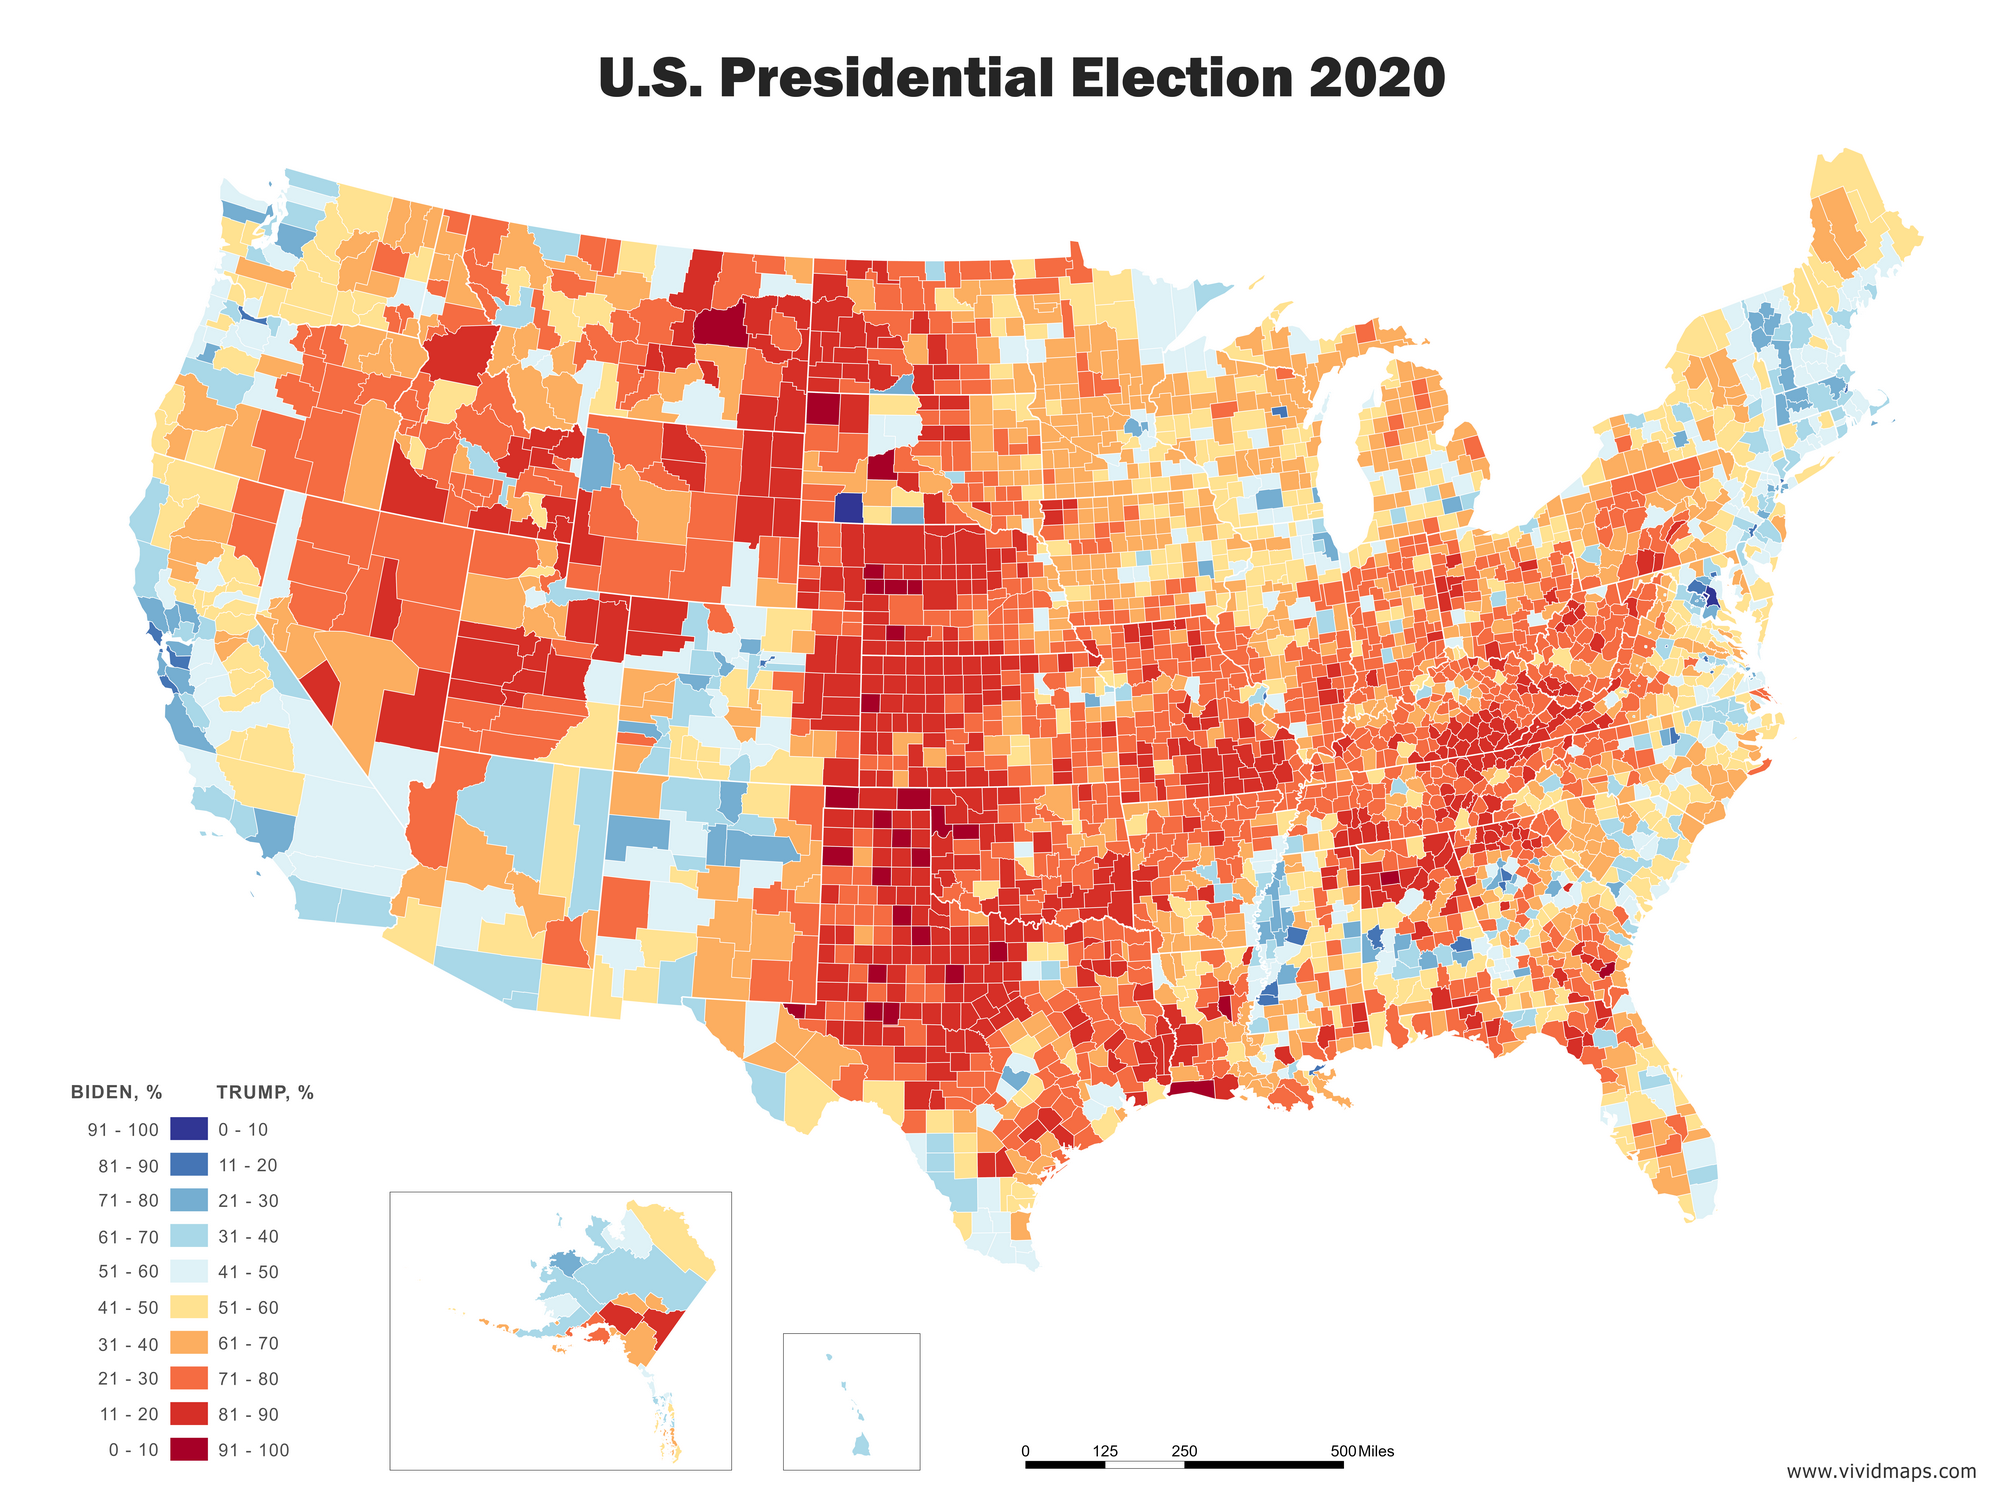 Map of the U.S. Election 2020